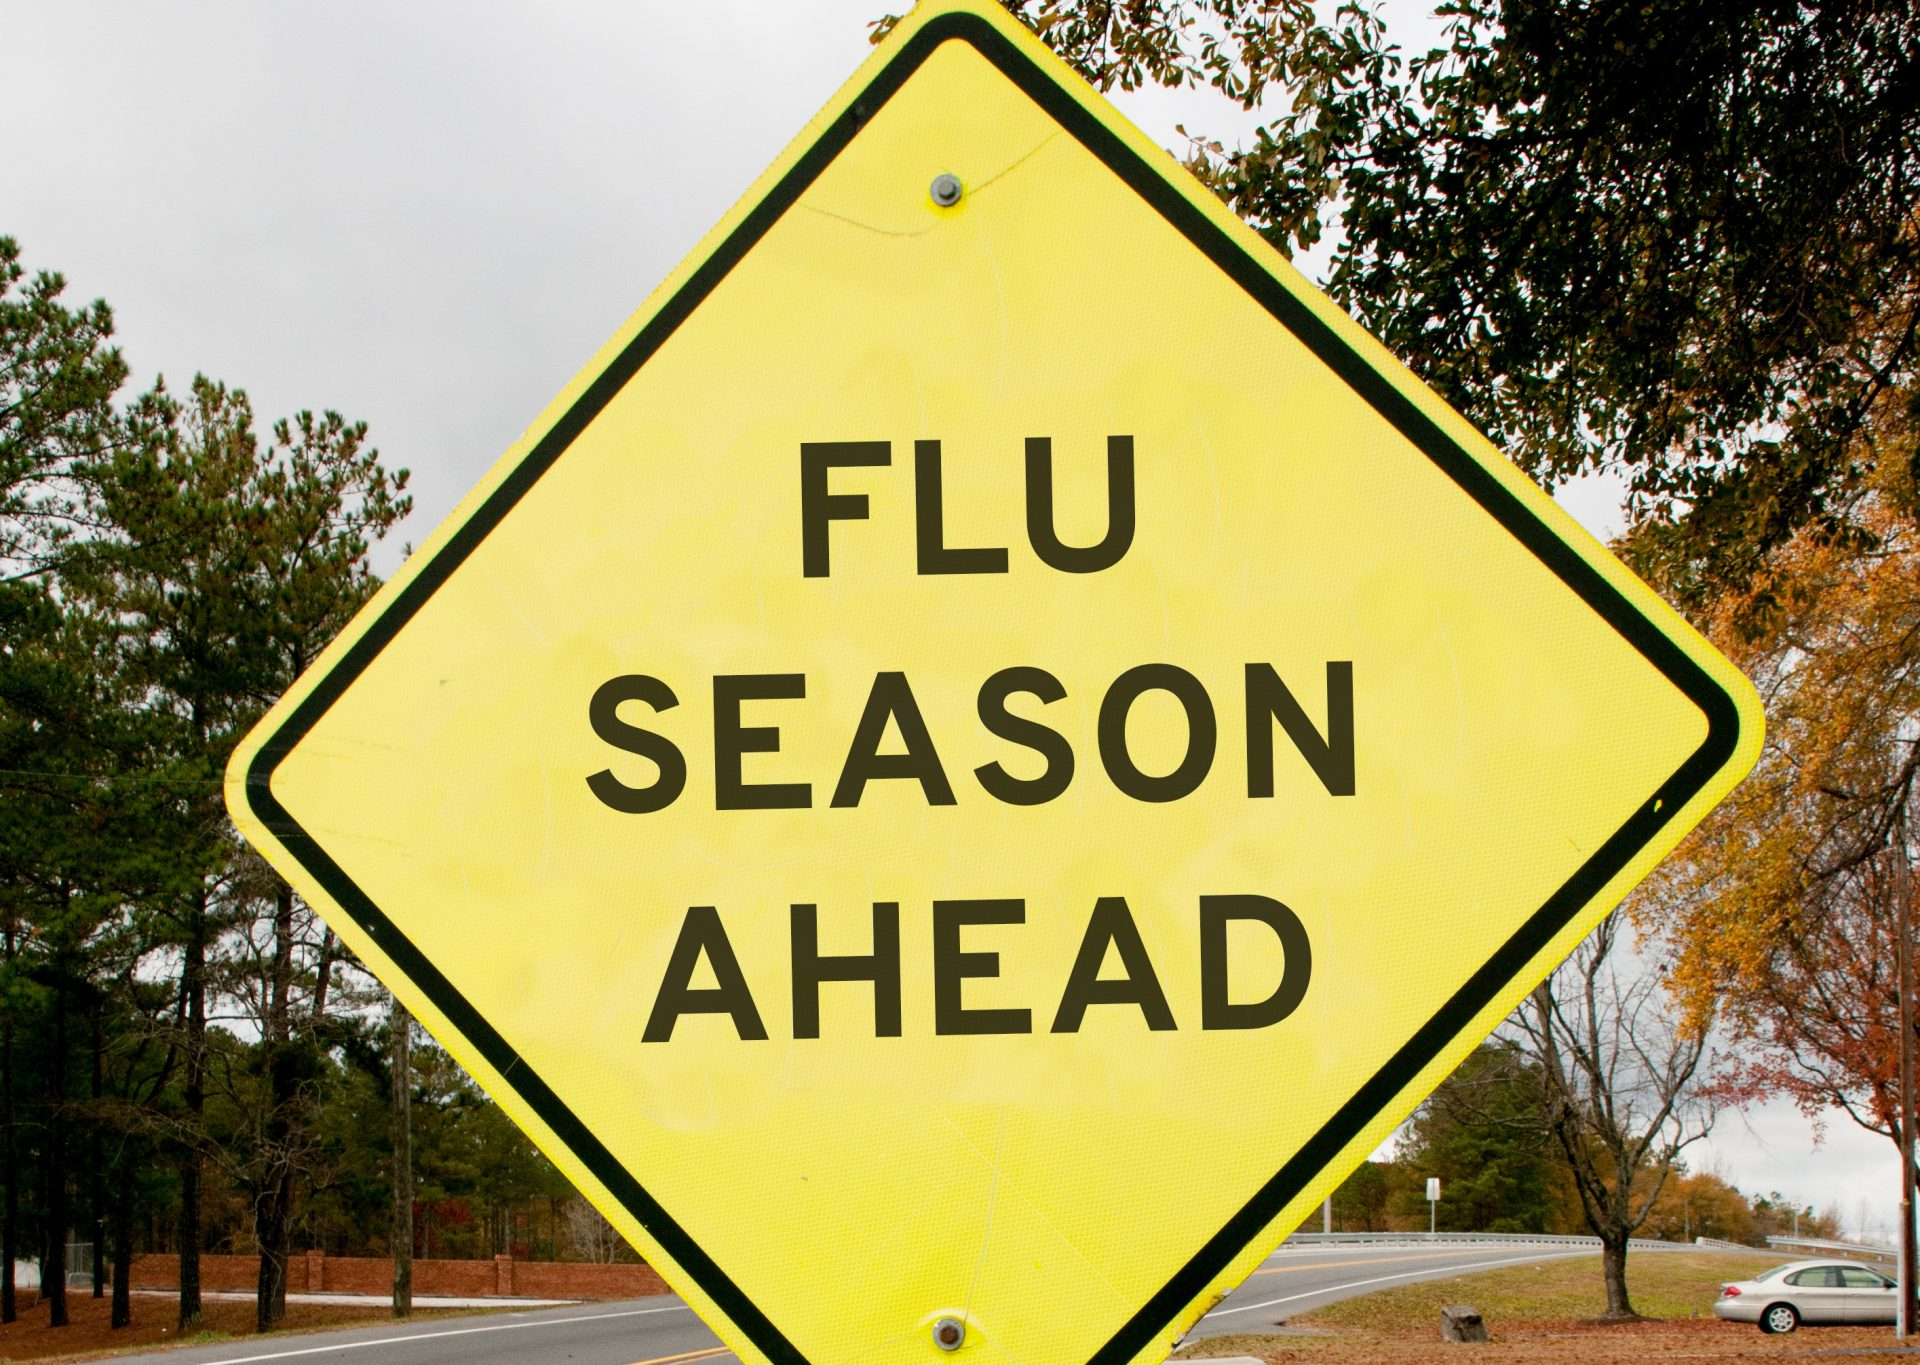 10 things you should know about the flu virus